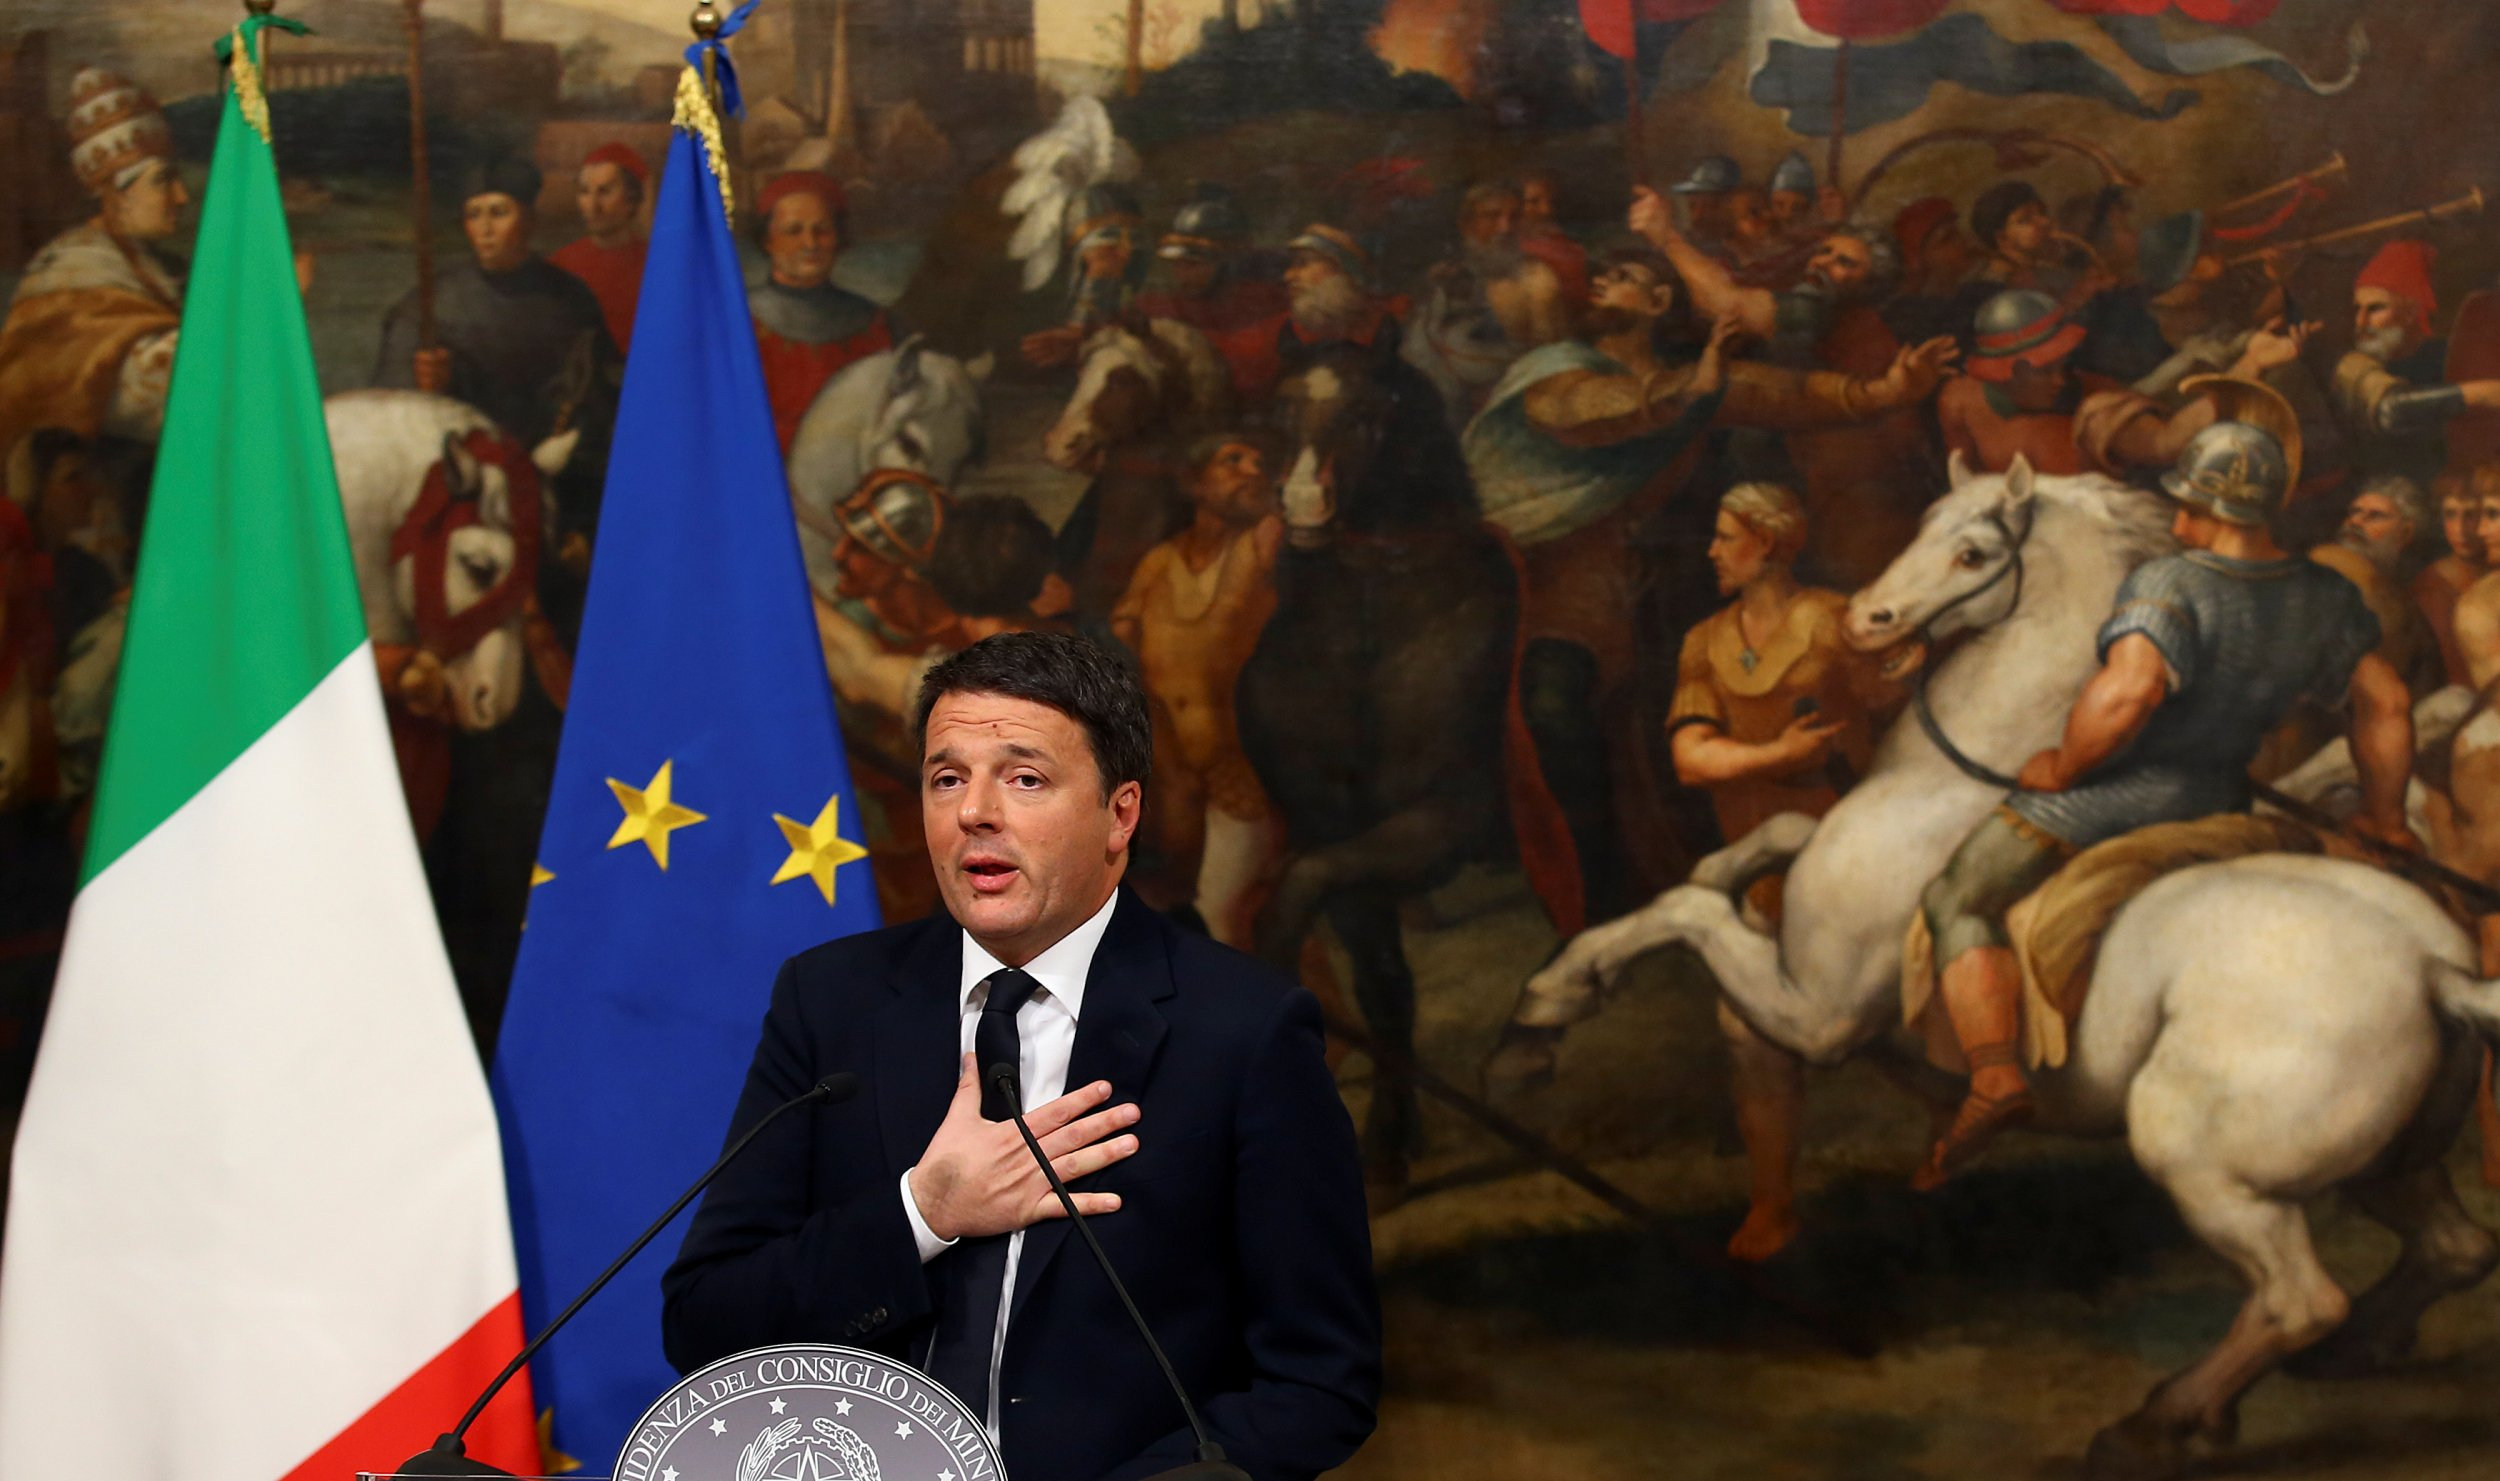 Renzi speaking